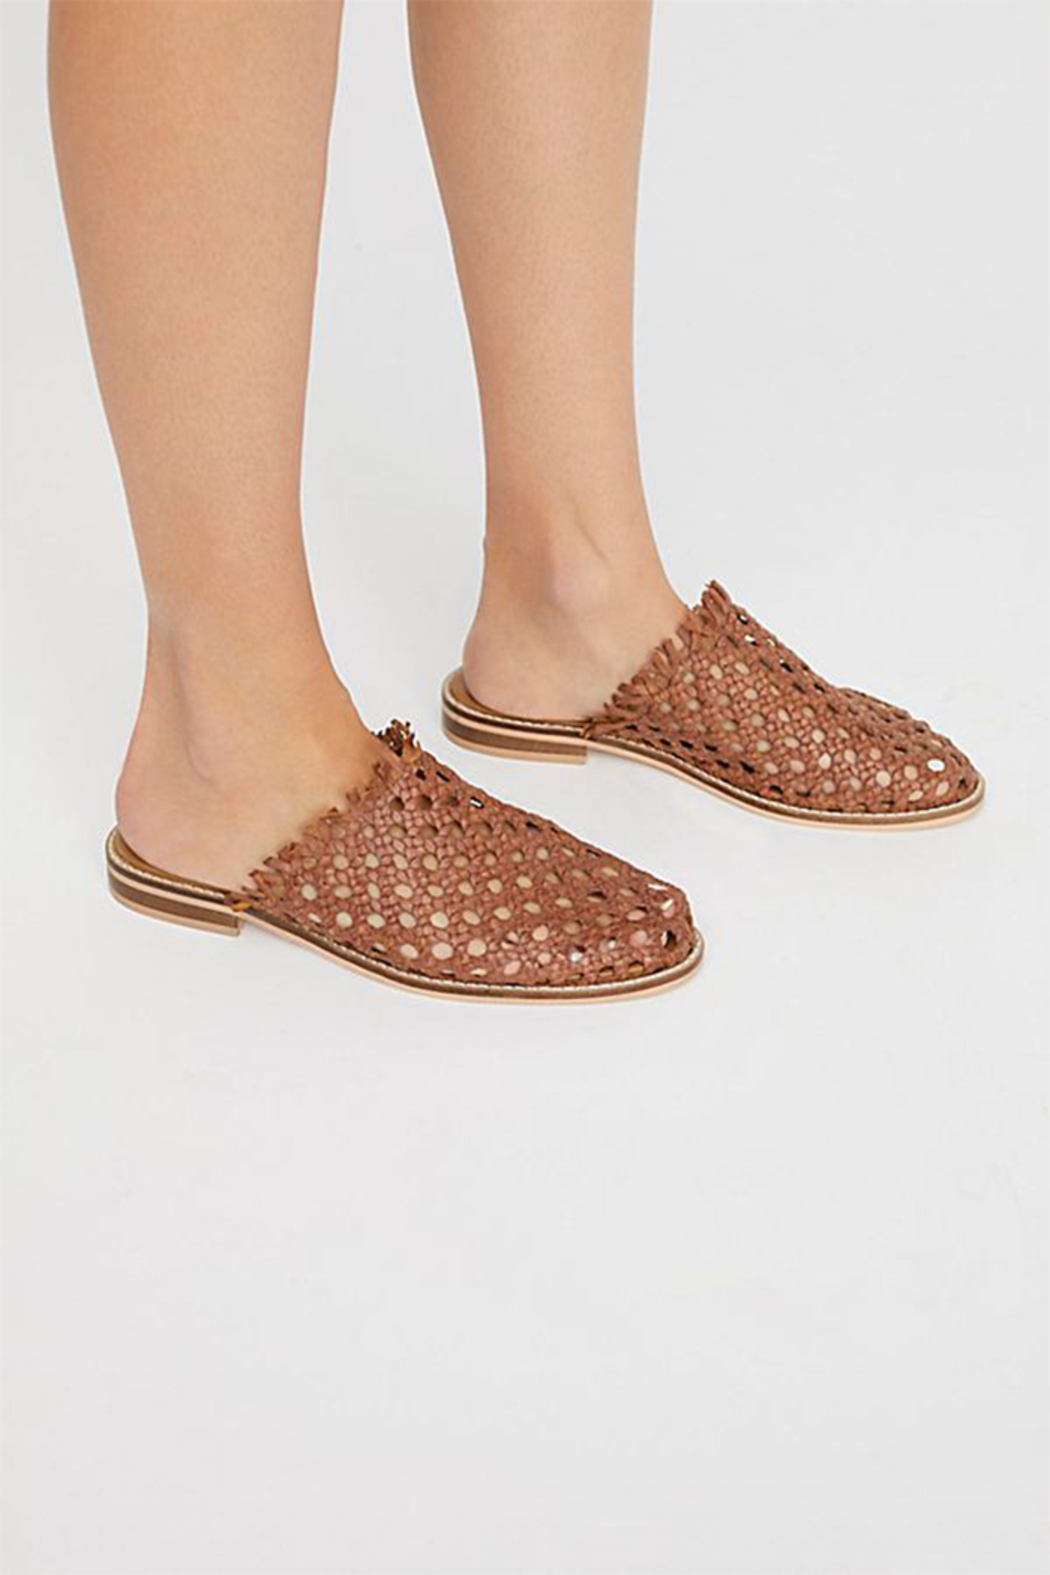 Free People Mirage Woven Flat - Front Full Image